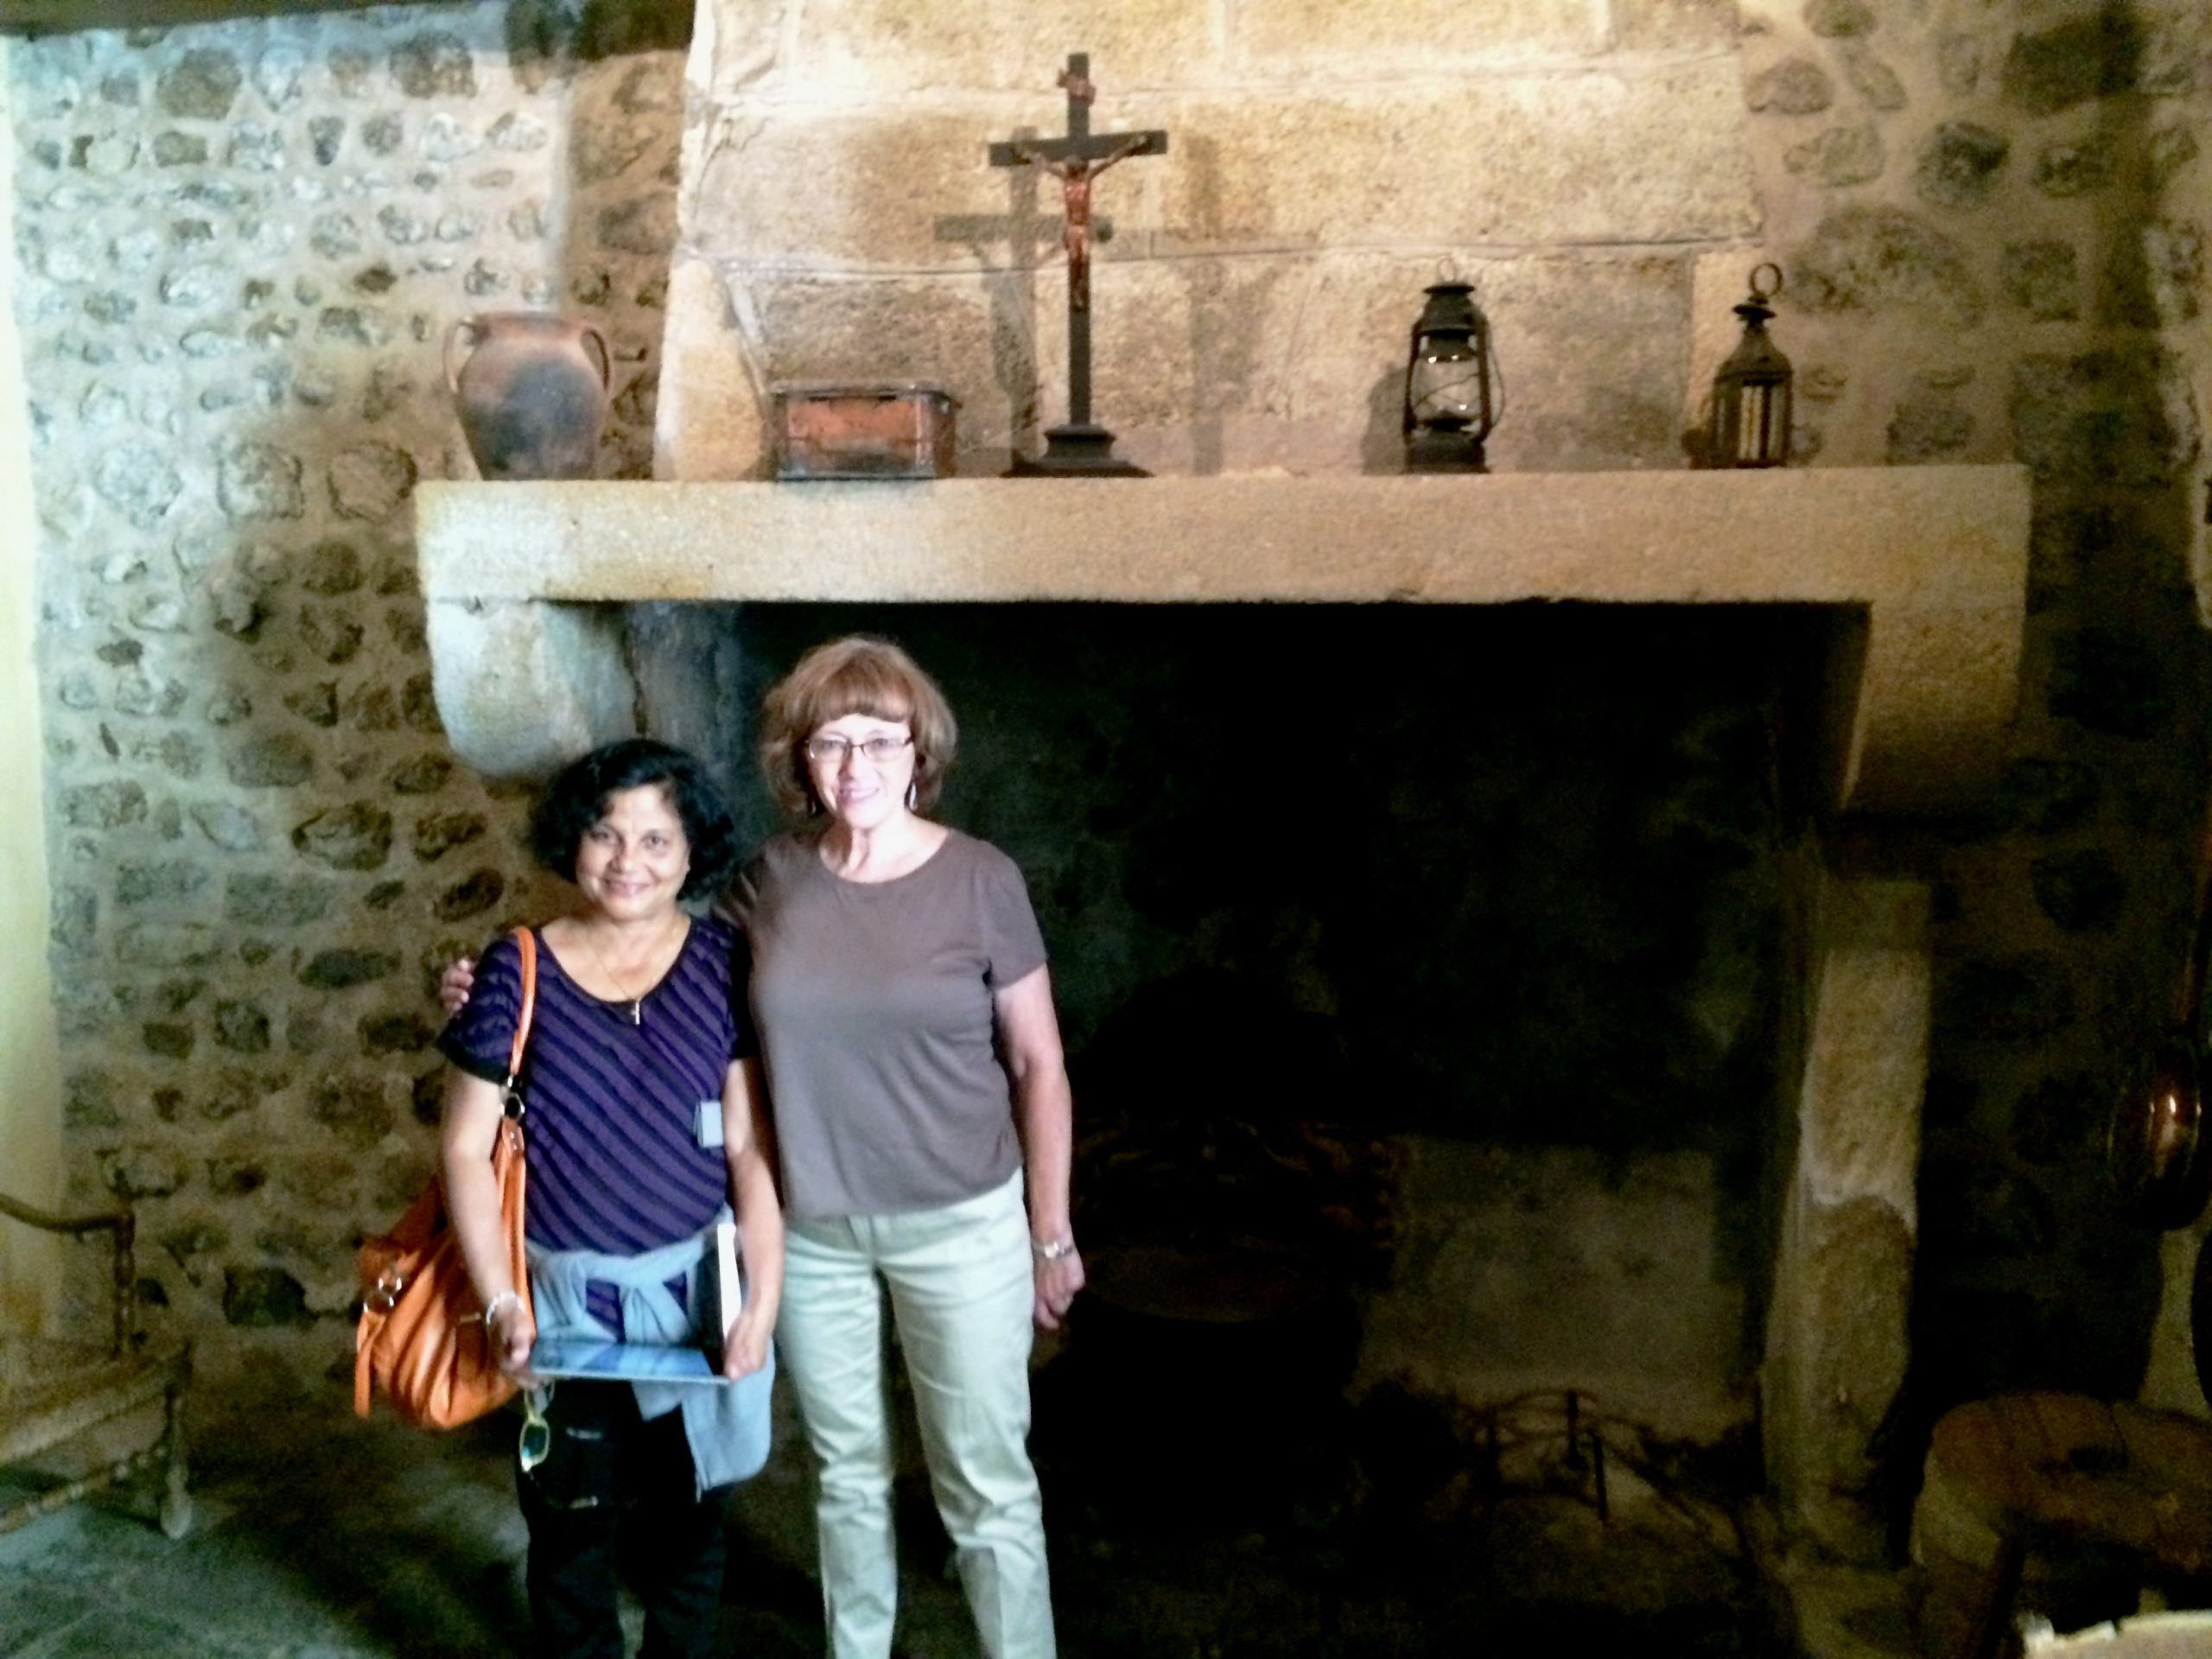 Mary & Sandra in the original stone kitchen